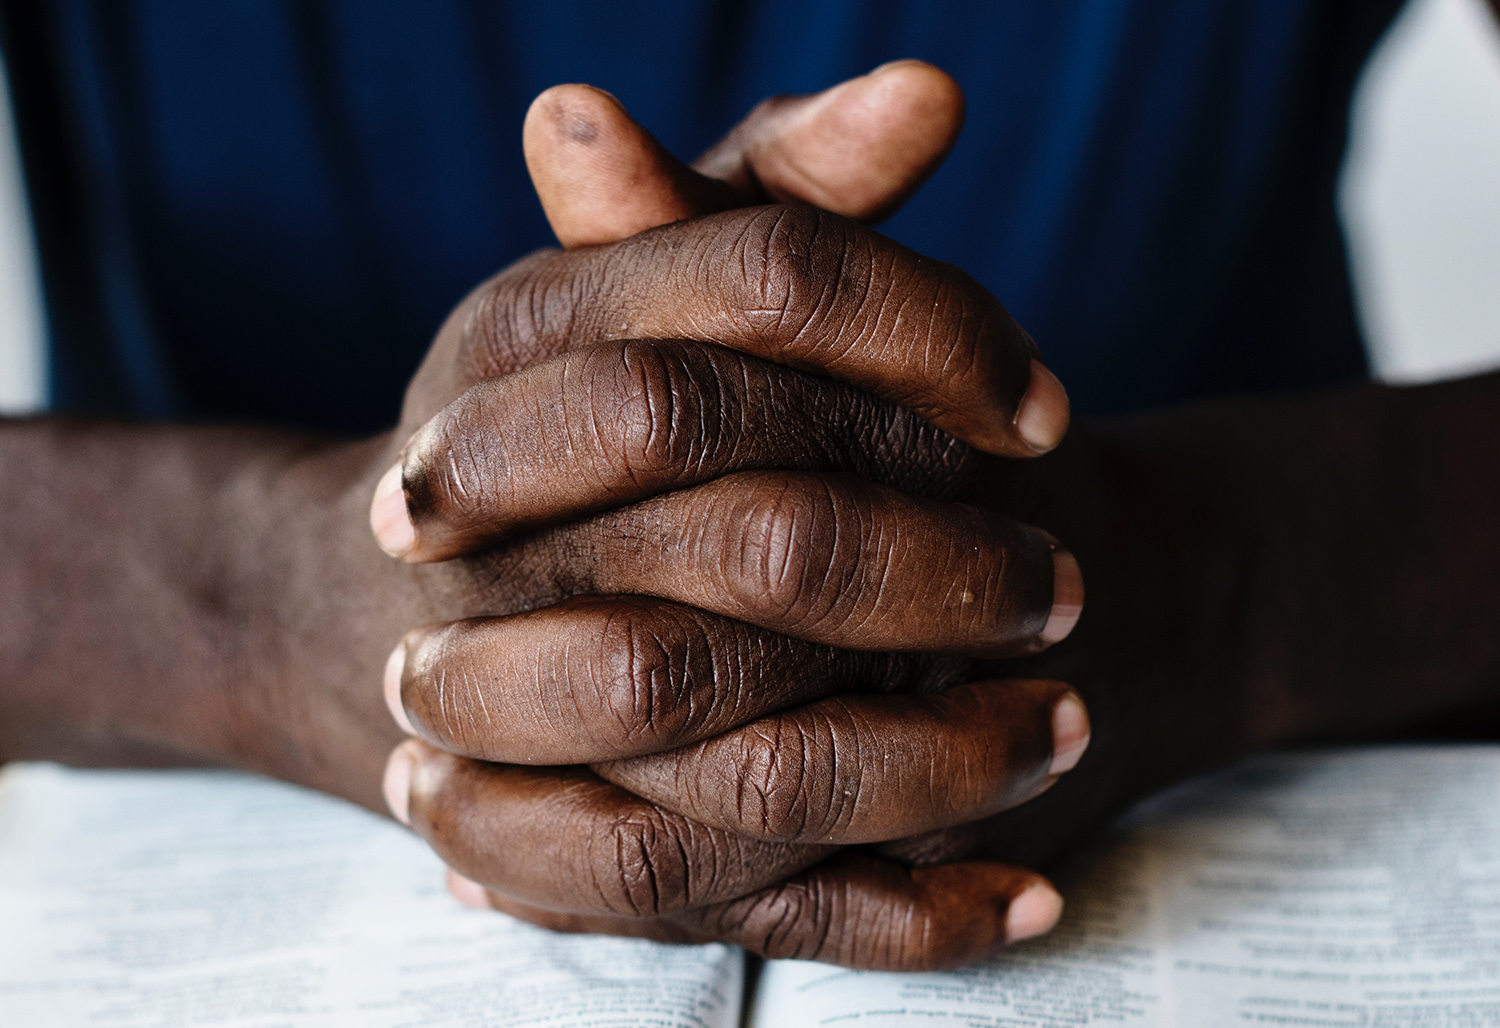 Hands young African person web